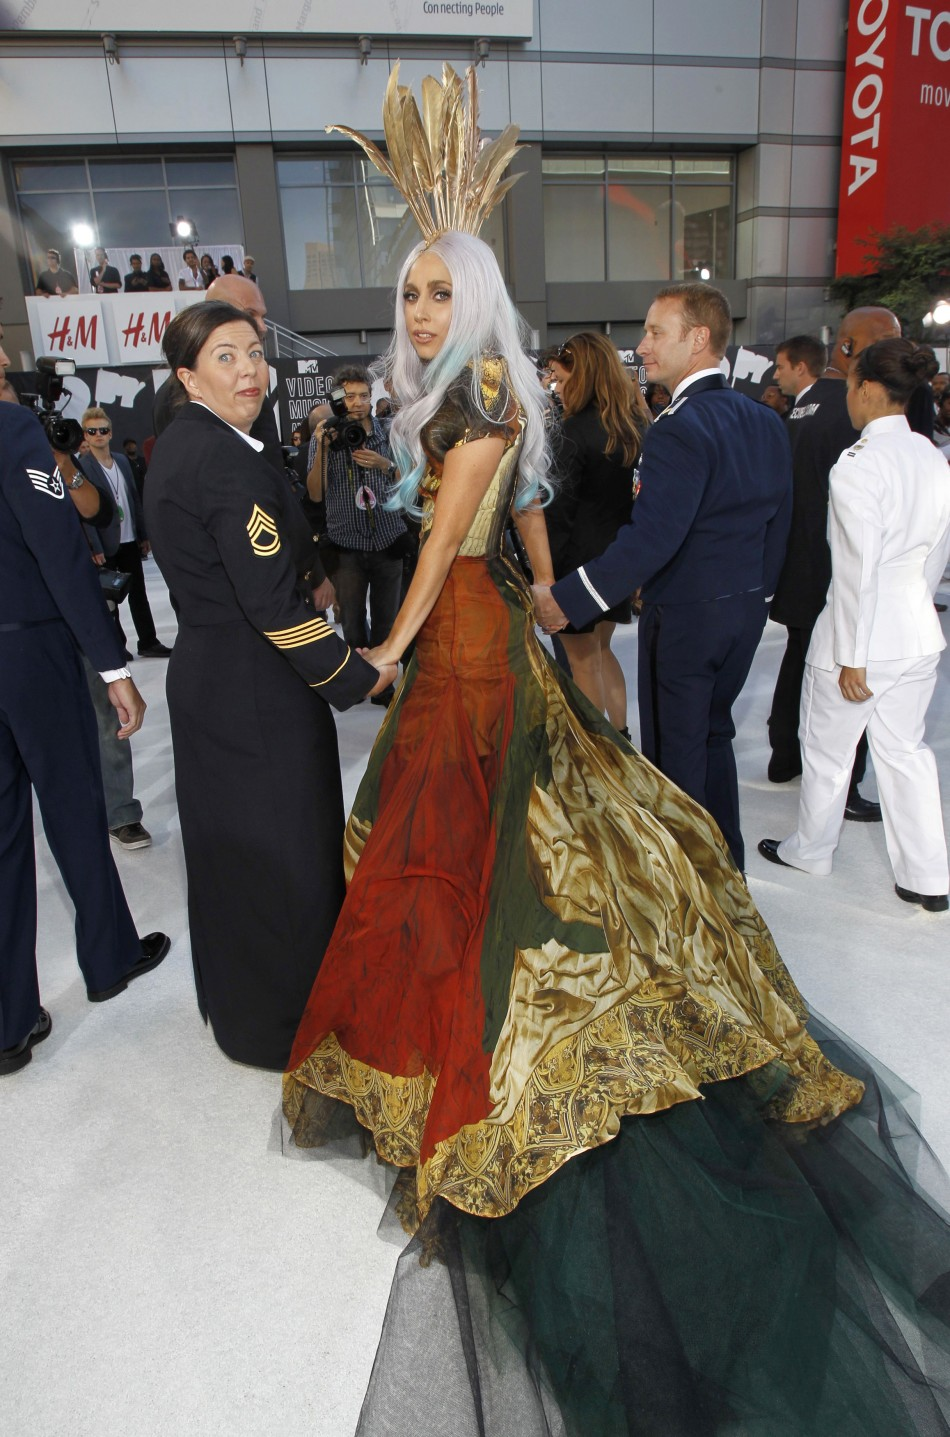 Singer Lady Gaga arrives at the 2010 MTV Video Music Awards in Los Angeles, California